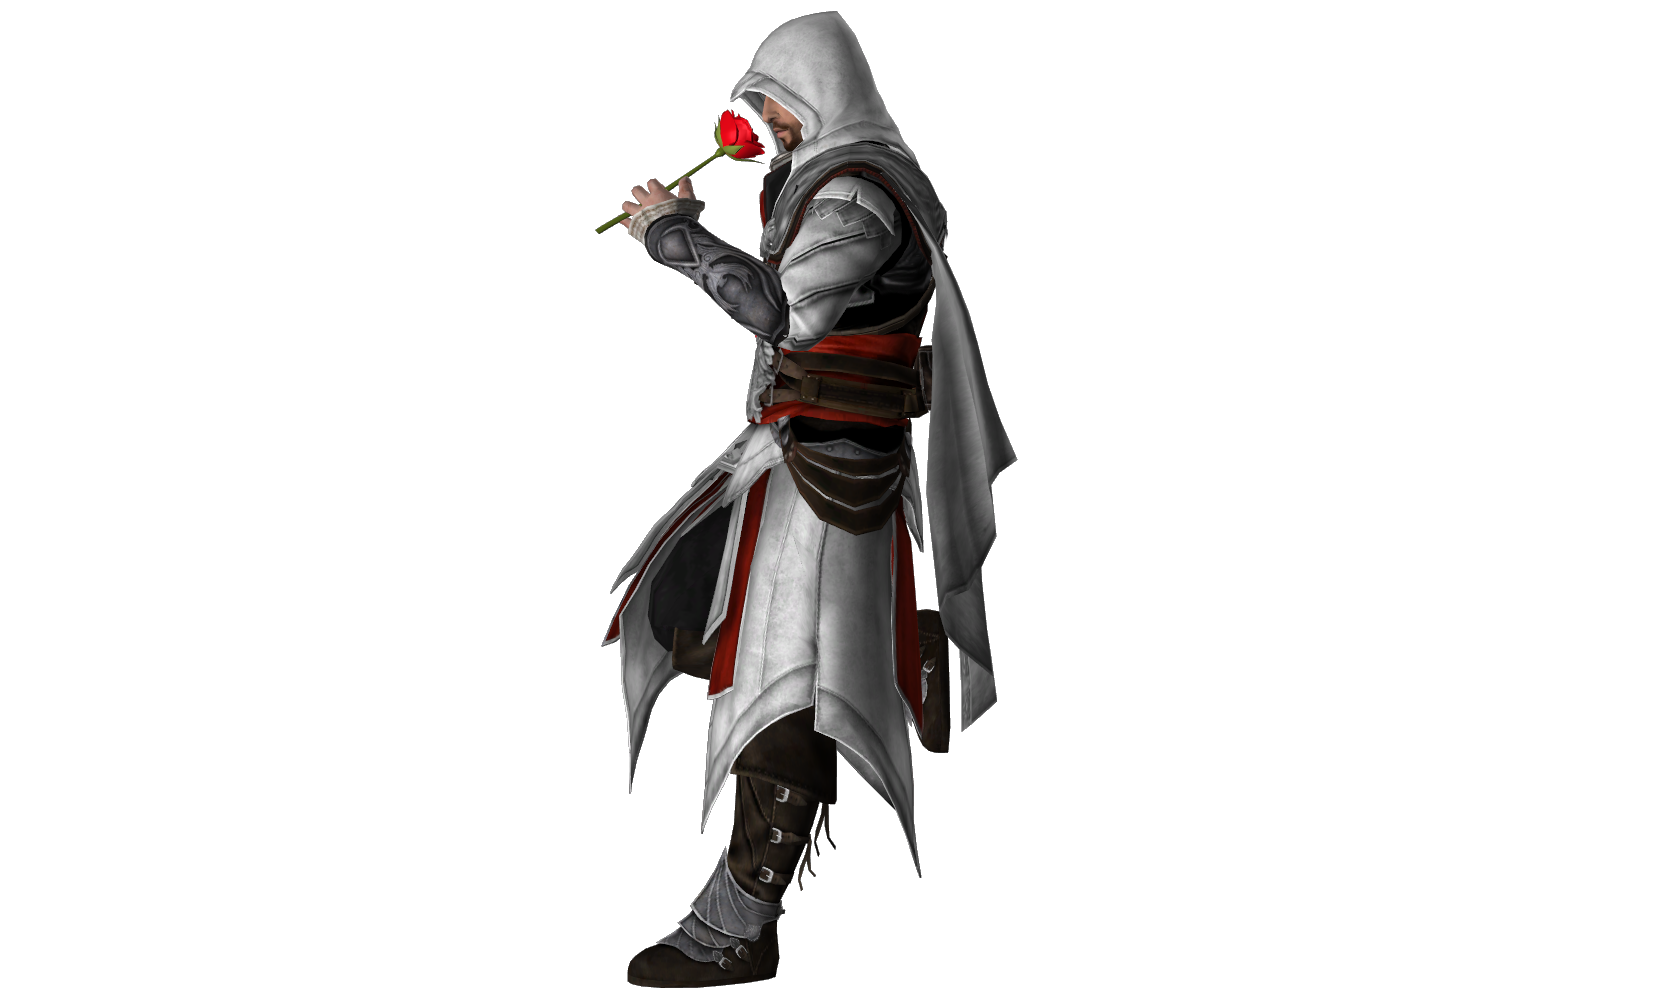 Ezio Auditore Free Download PNG Image